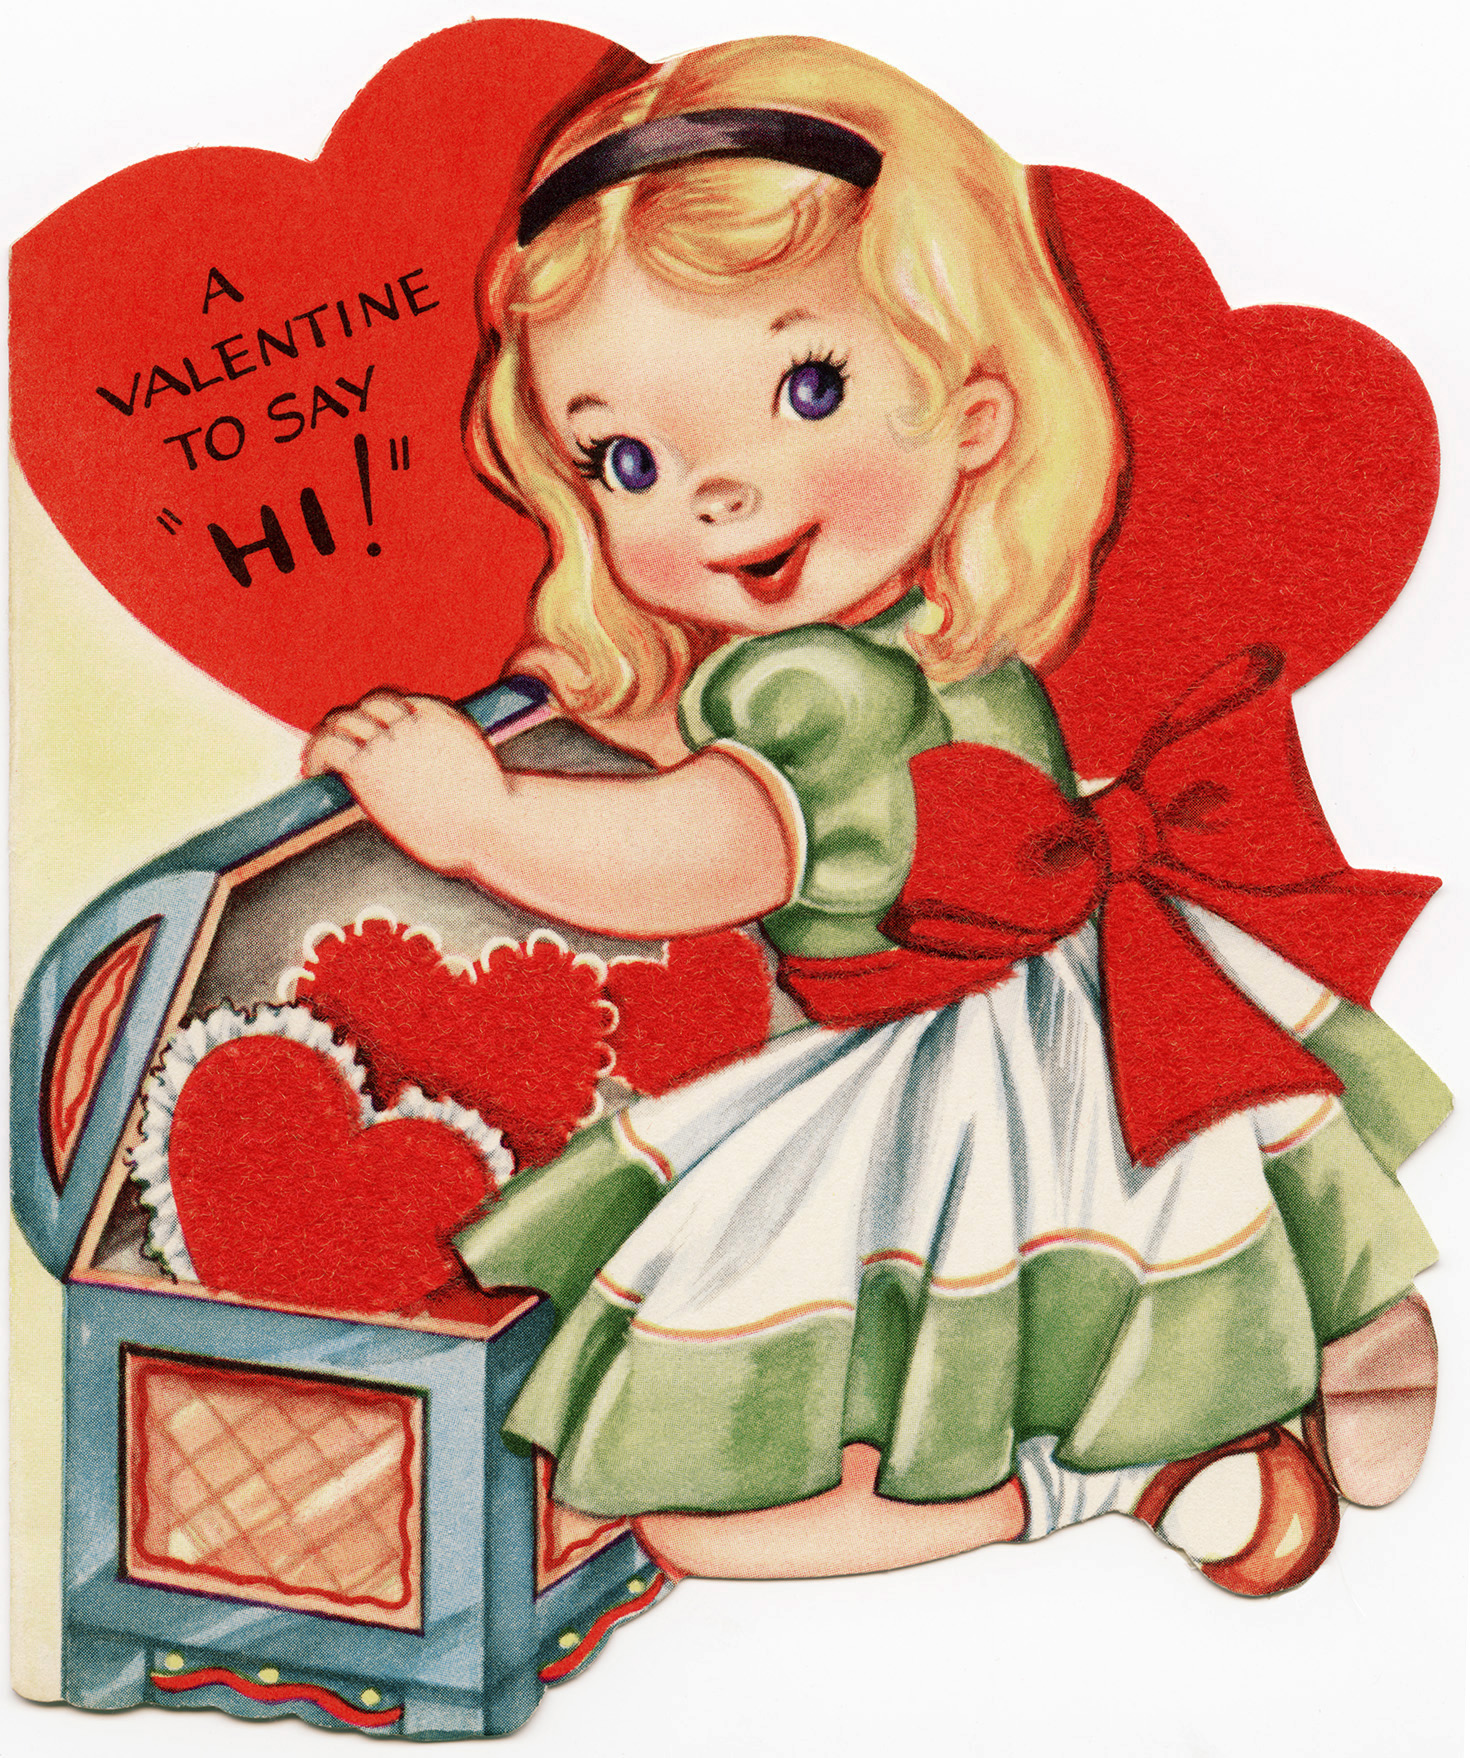 Vintage valentine free clipart banner download Free Vintage Image ~ A Valentine To Say Hi! - Old Design ... banner download